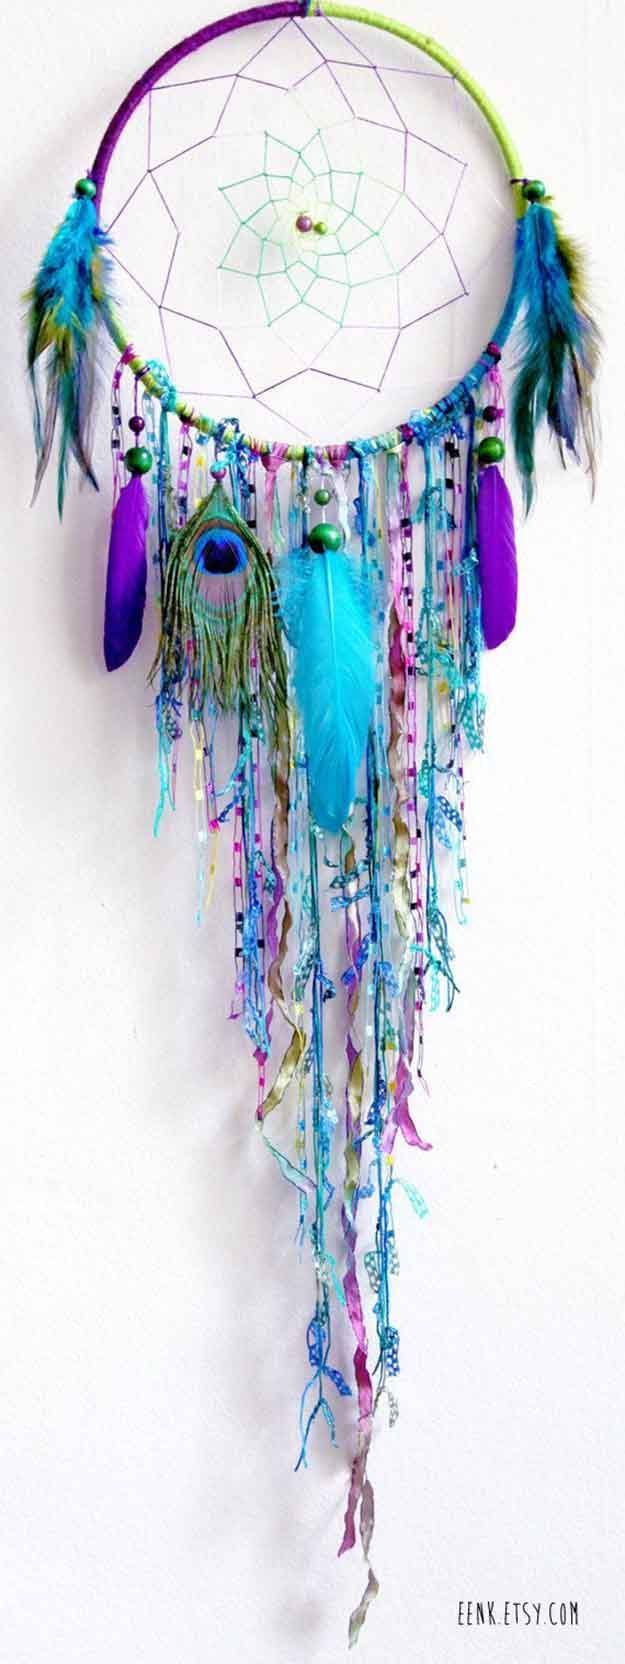 Peacock feather dreamcatcher | DIY dreammcatcher | Ideas & Inspiration, see more at http://diyready.com/diy-dreamcatcher-ideas-instructions-inspiration (scheduled via http://www.tailwindapp.com?utm_source=pinterest&utm_medium=twpin&utm_content=post86804821&utm_campaign=scheduler_attribution)